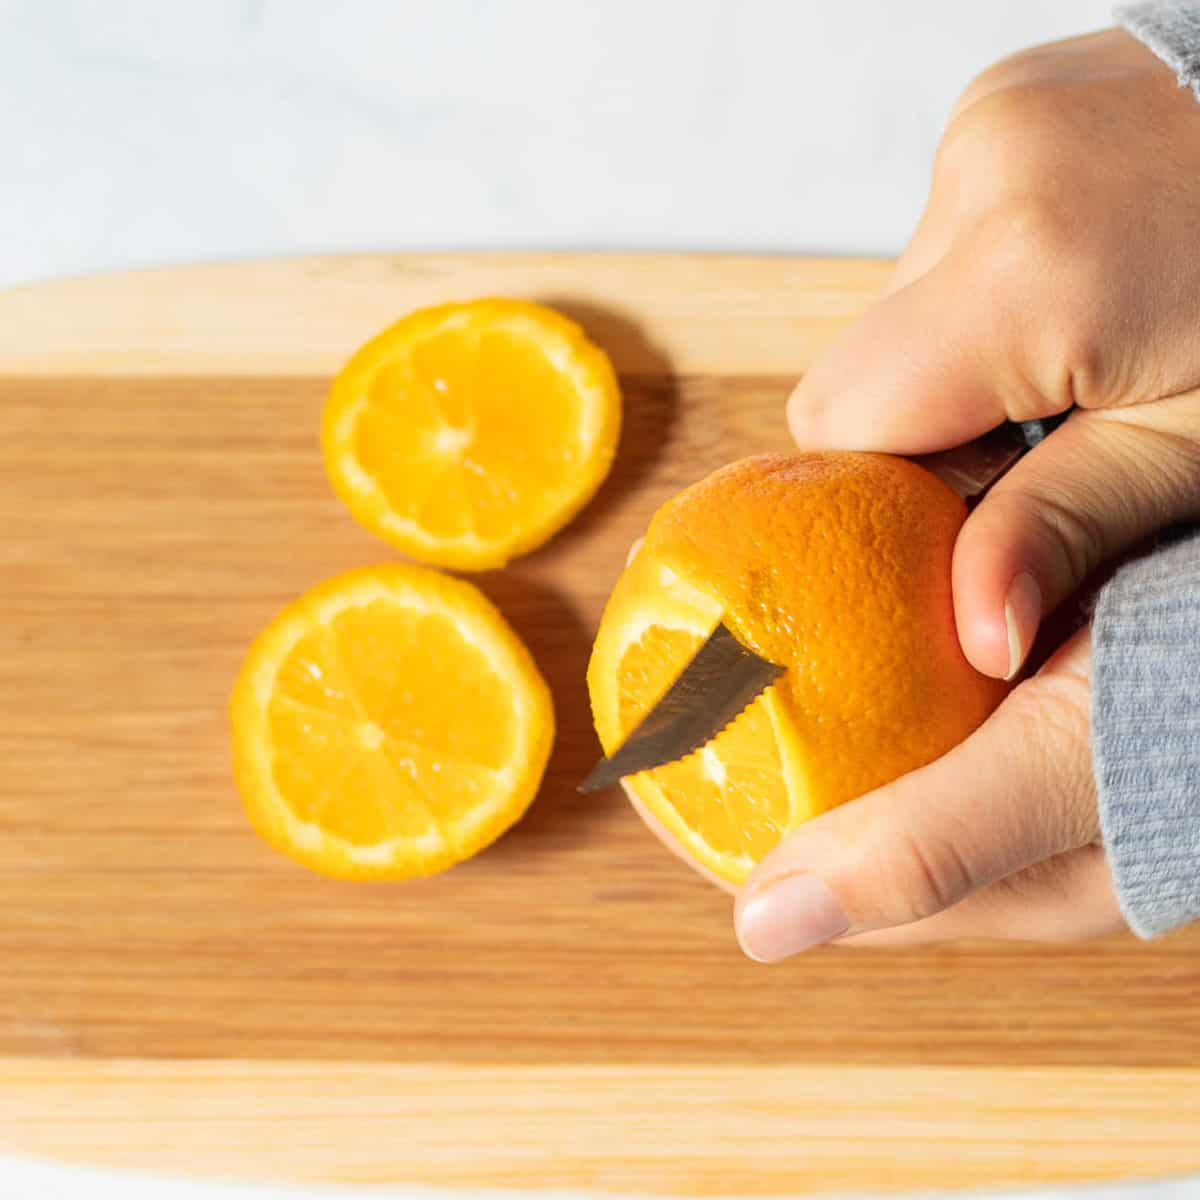 using a knife to peel an orange